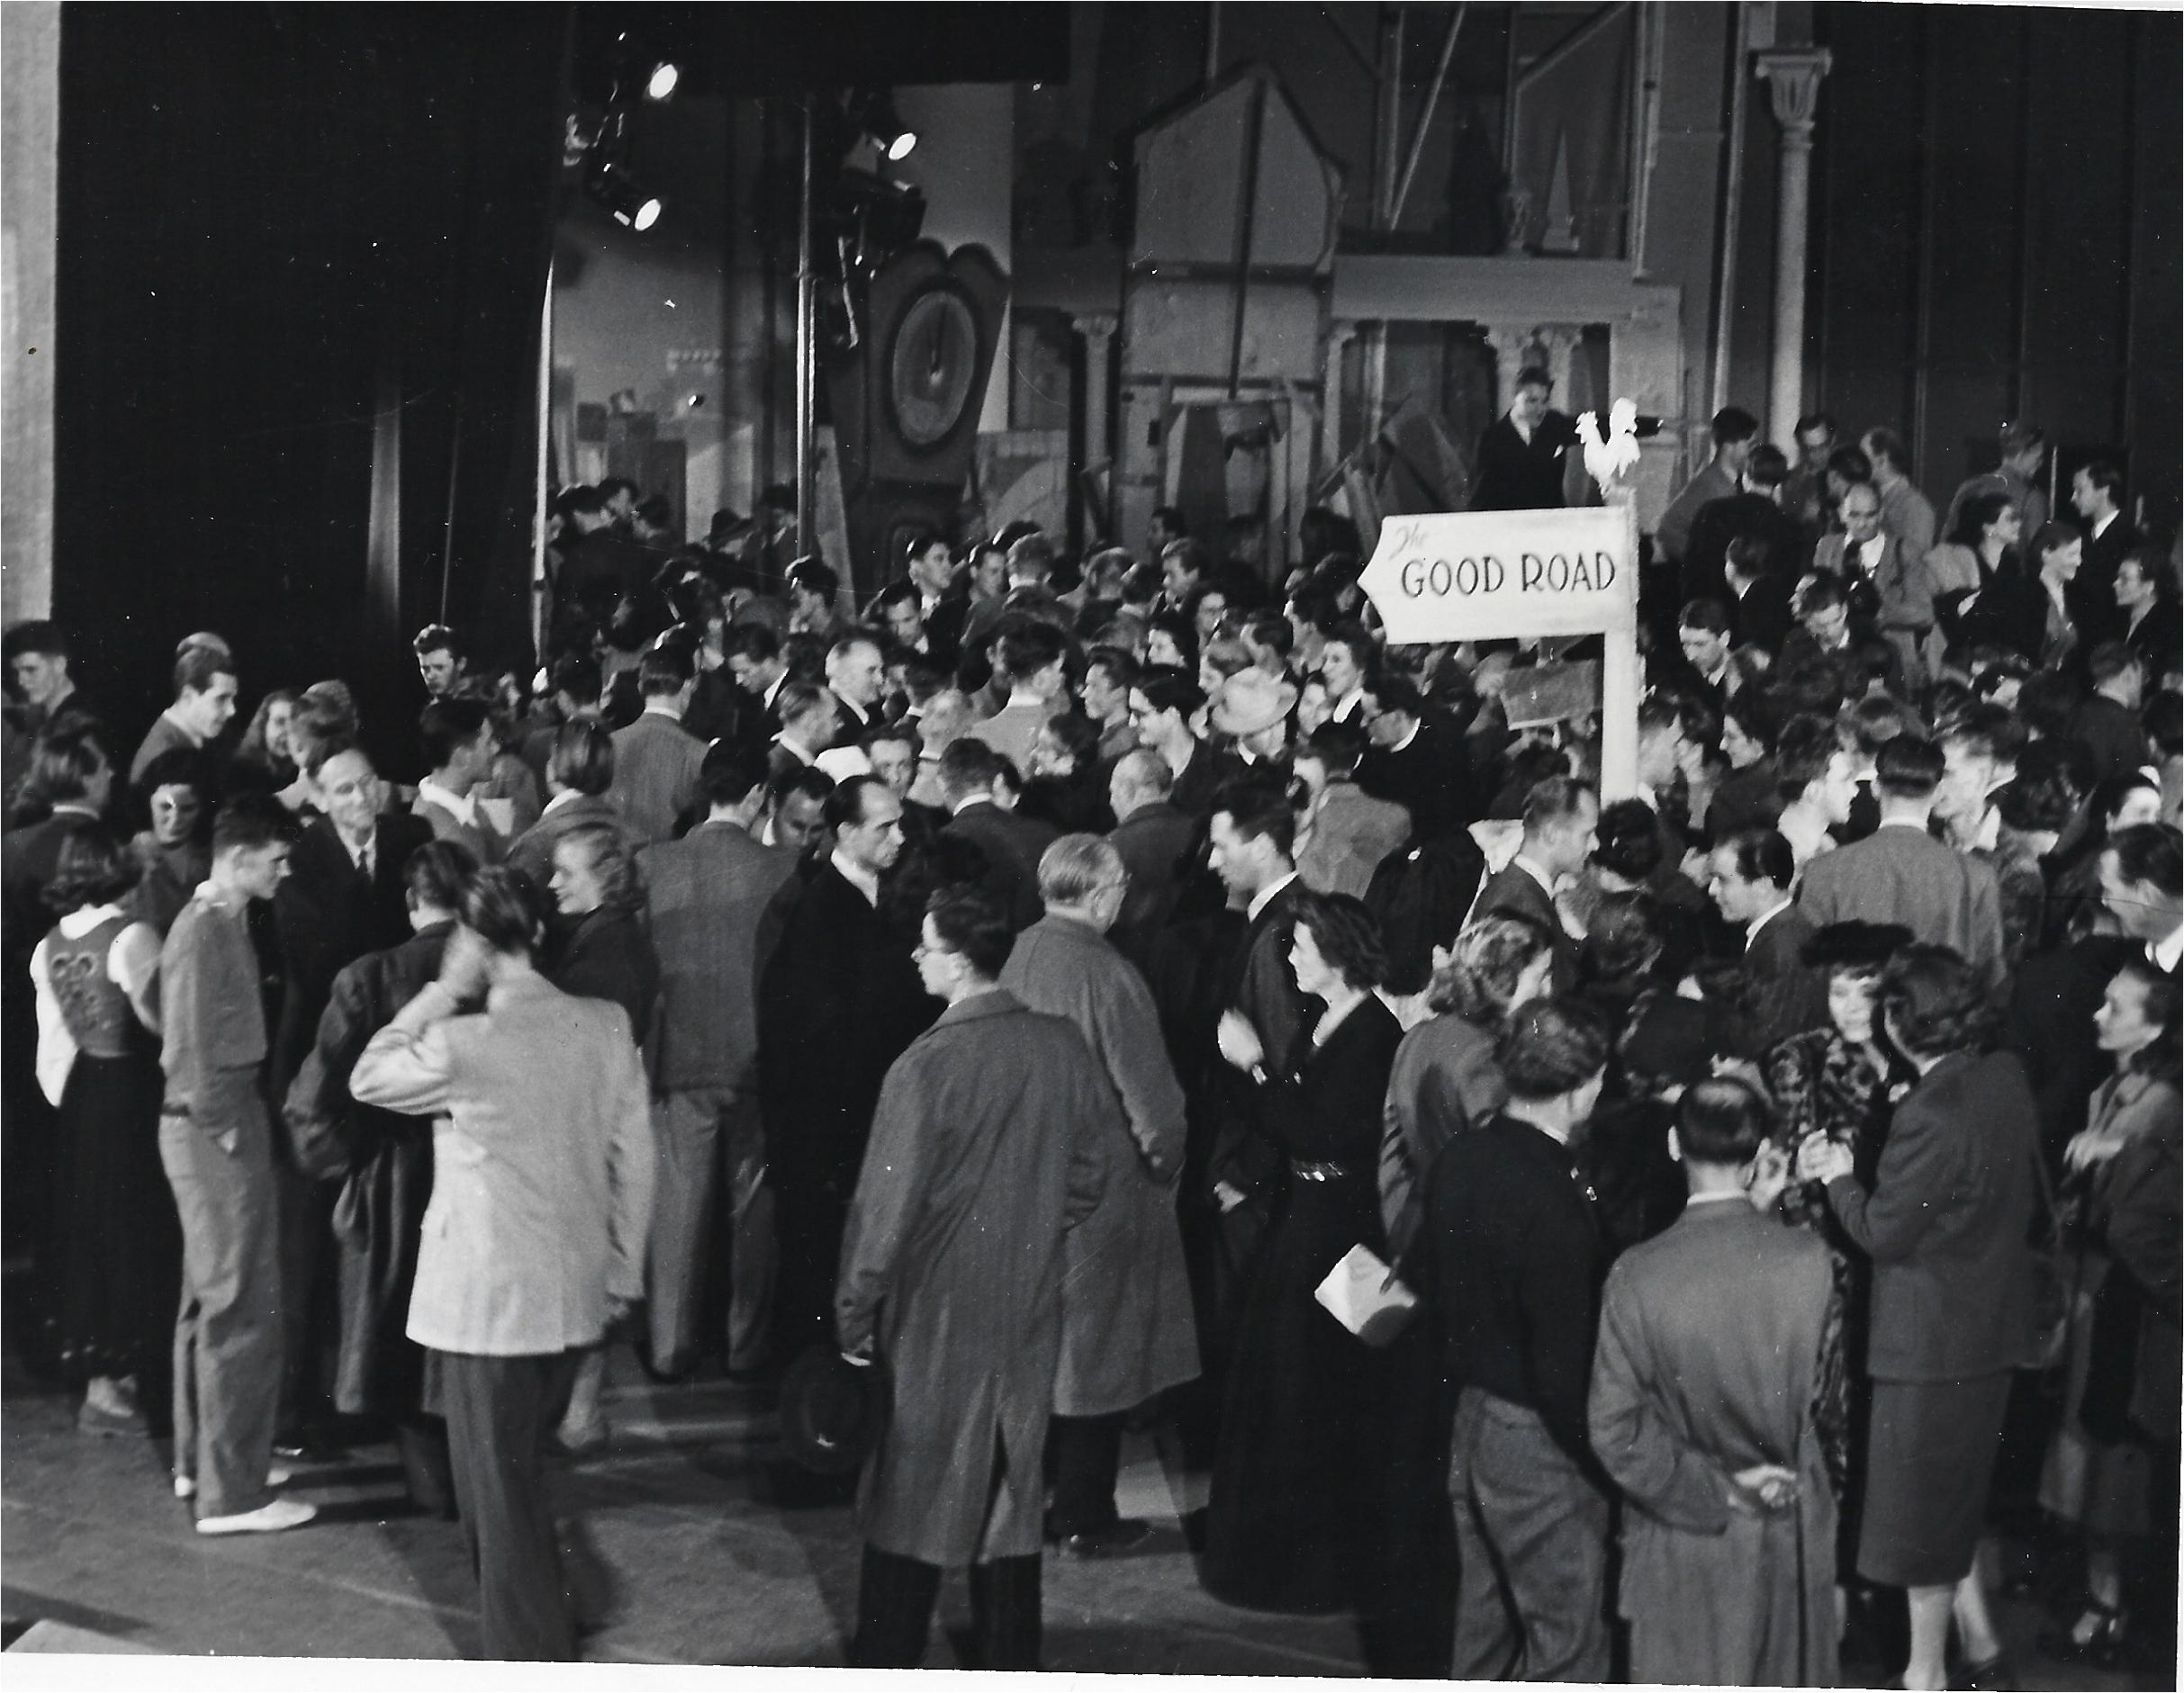 The cast of The Good Road meet the audience backstage after the show in Germany 1948